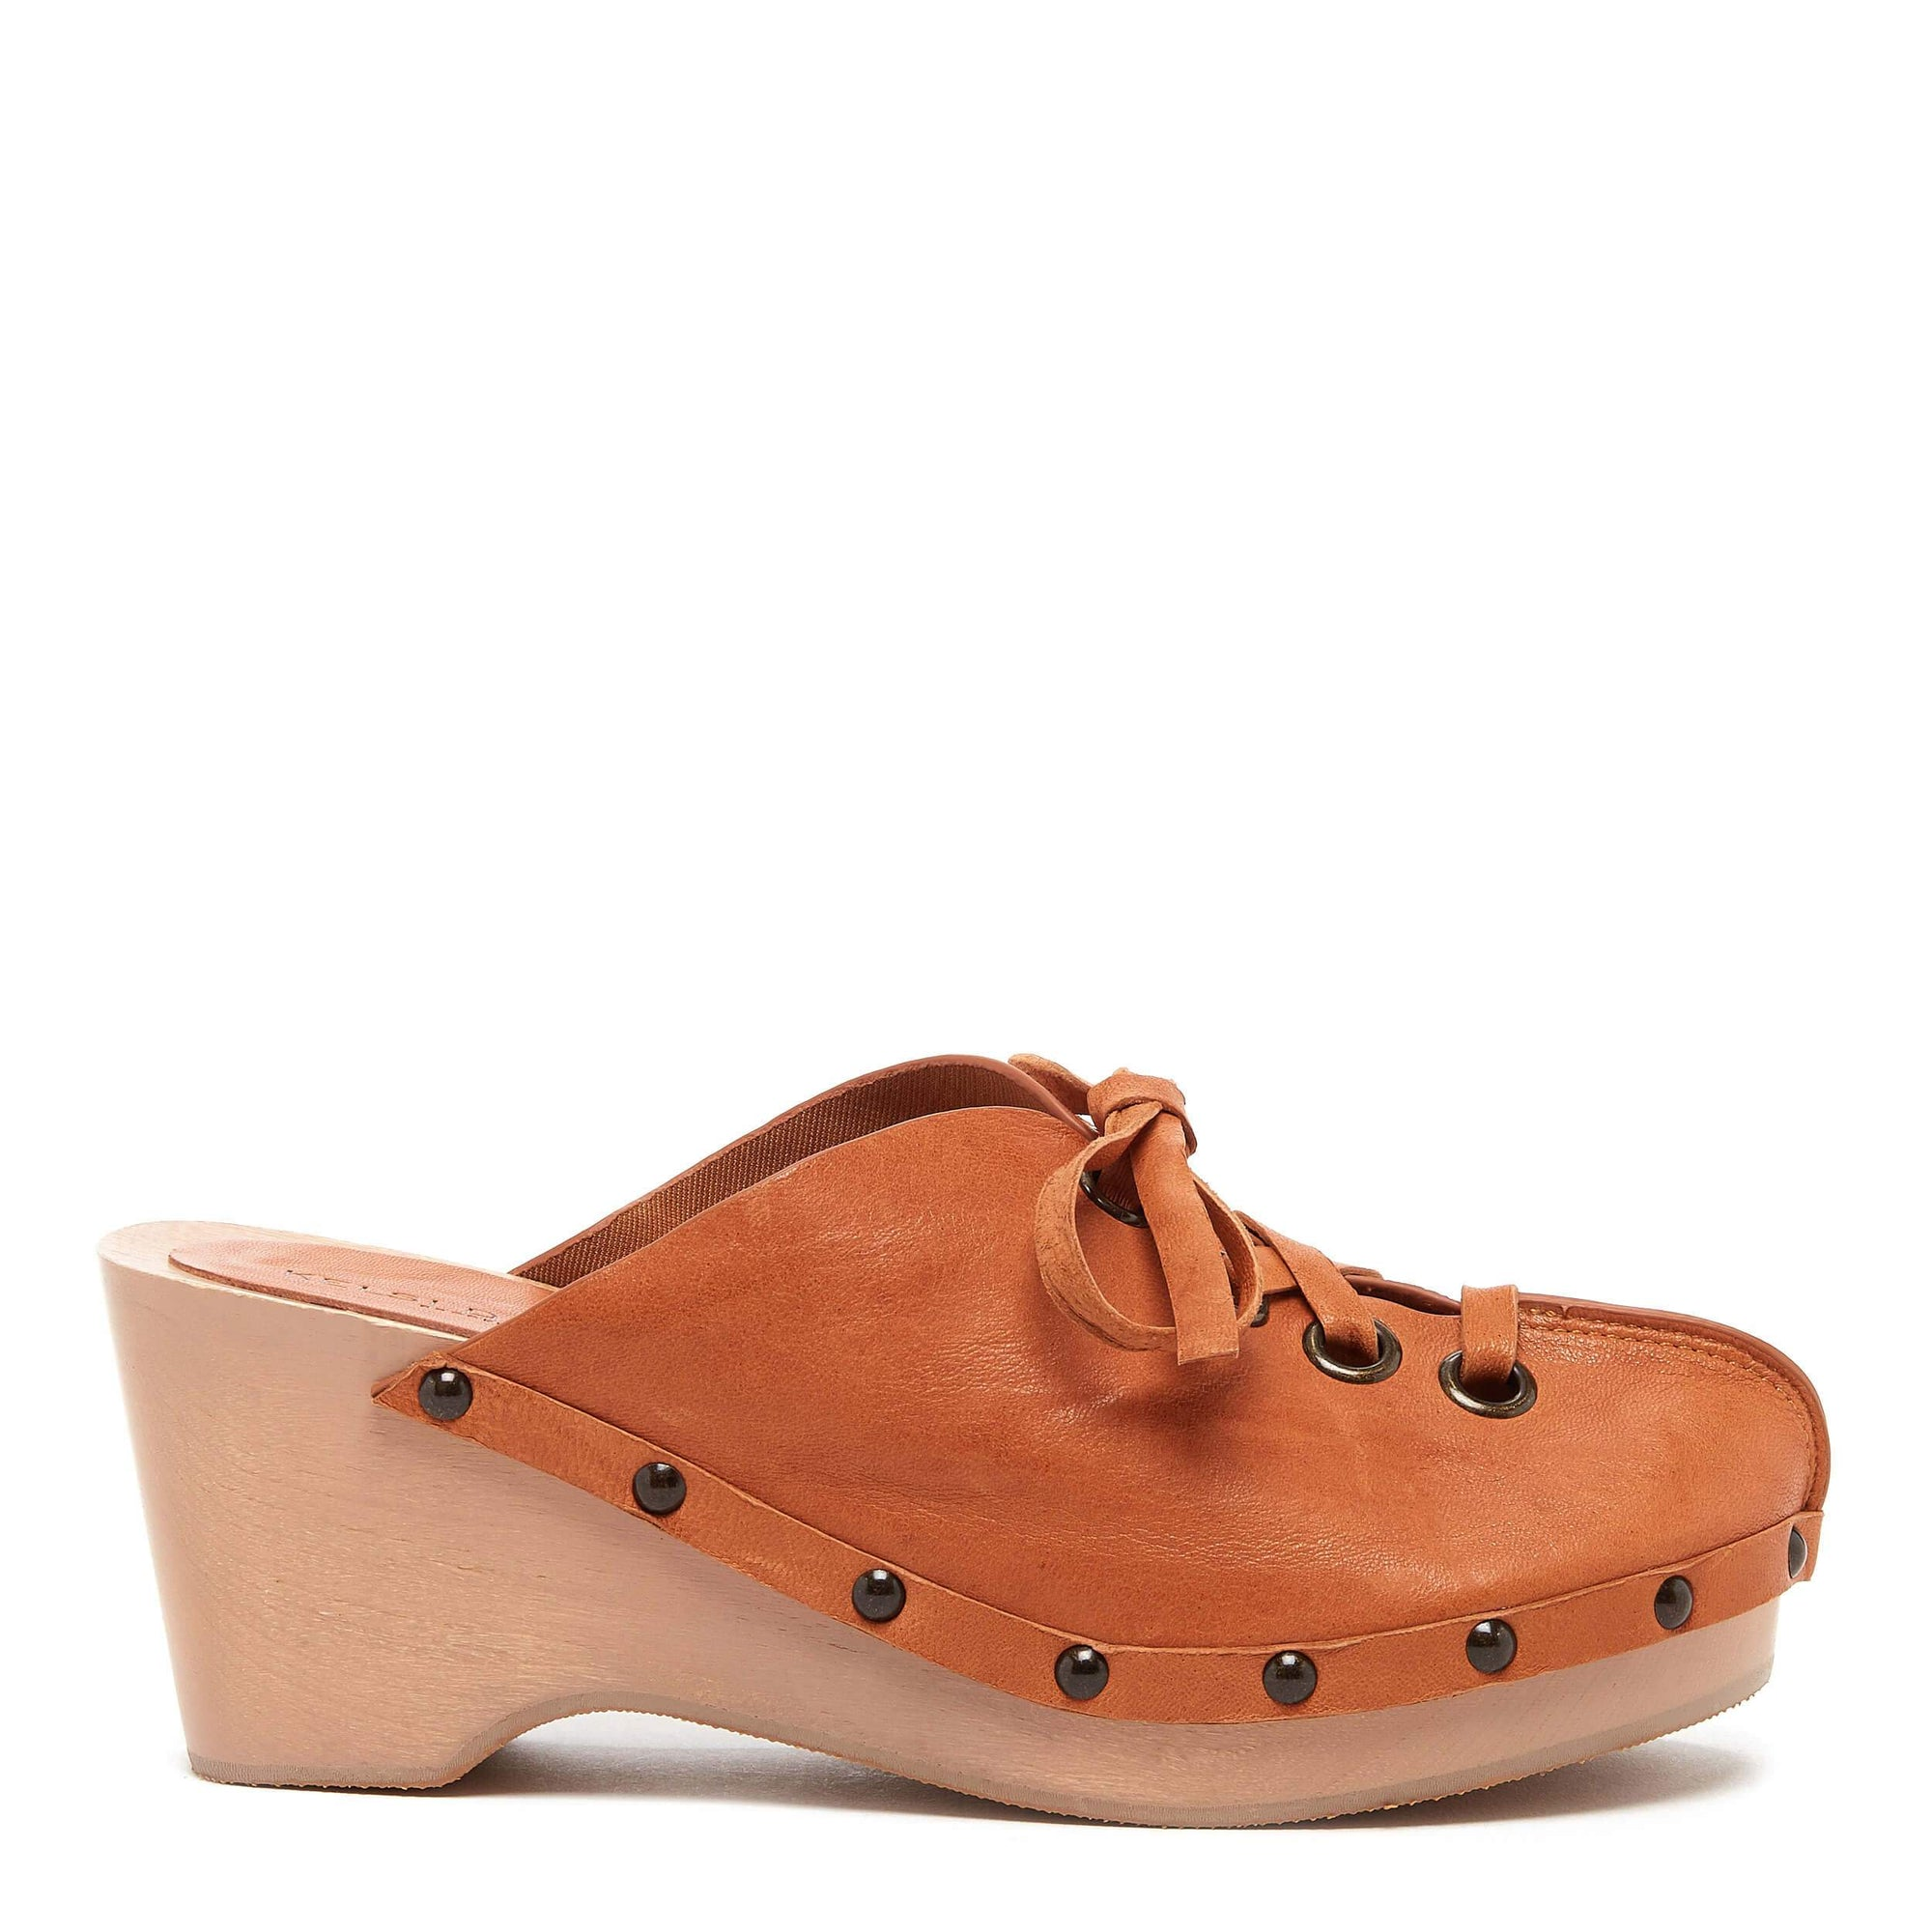 Kelsi Dagger BK® Just Acorn Wood Clog